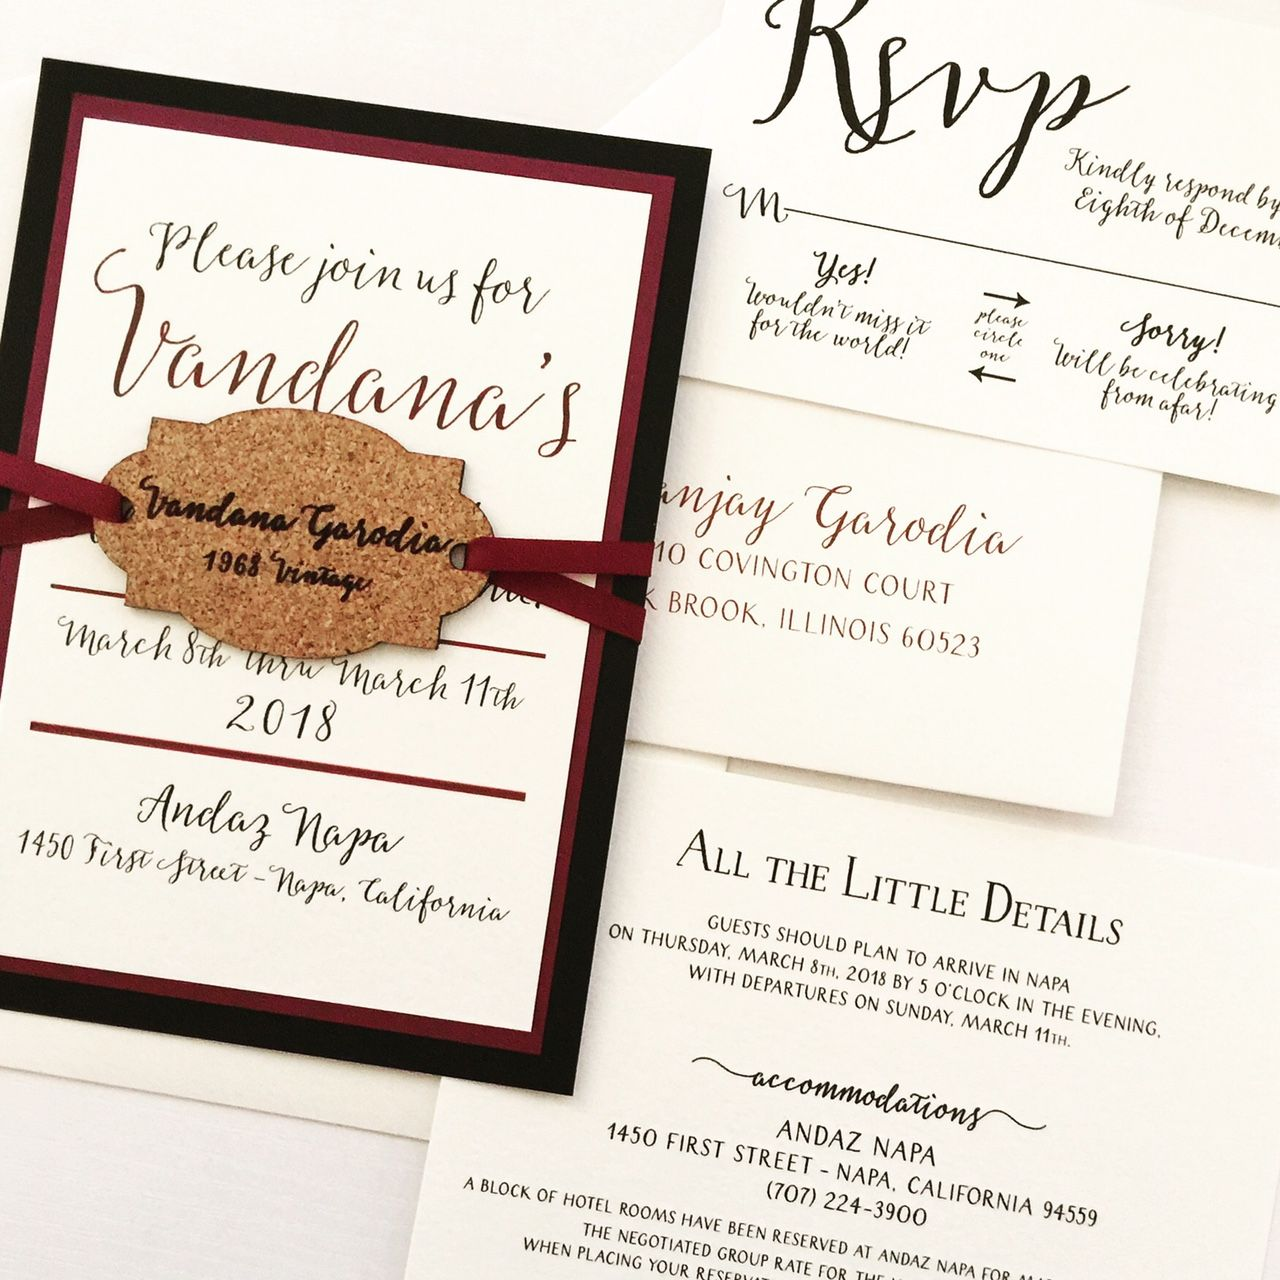 Winery Wedding Invitation with Wine Cork Hangtag - SAMPLE | Birthday ...